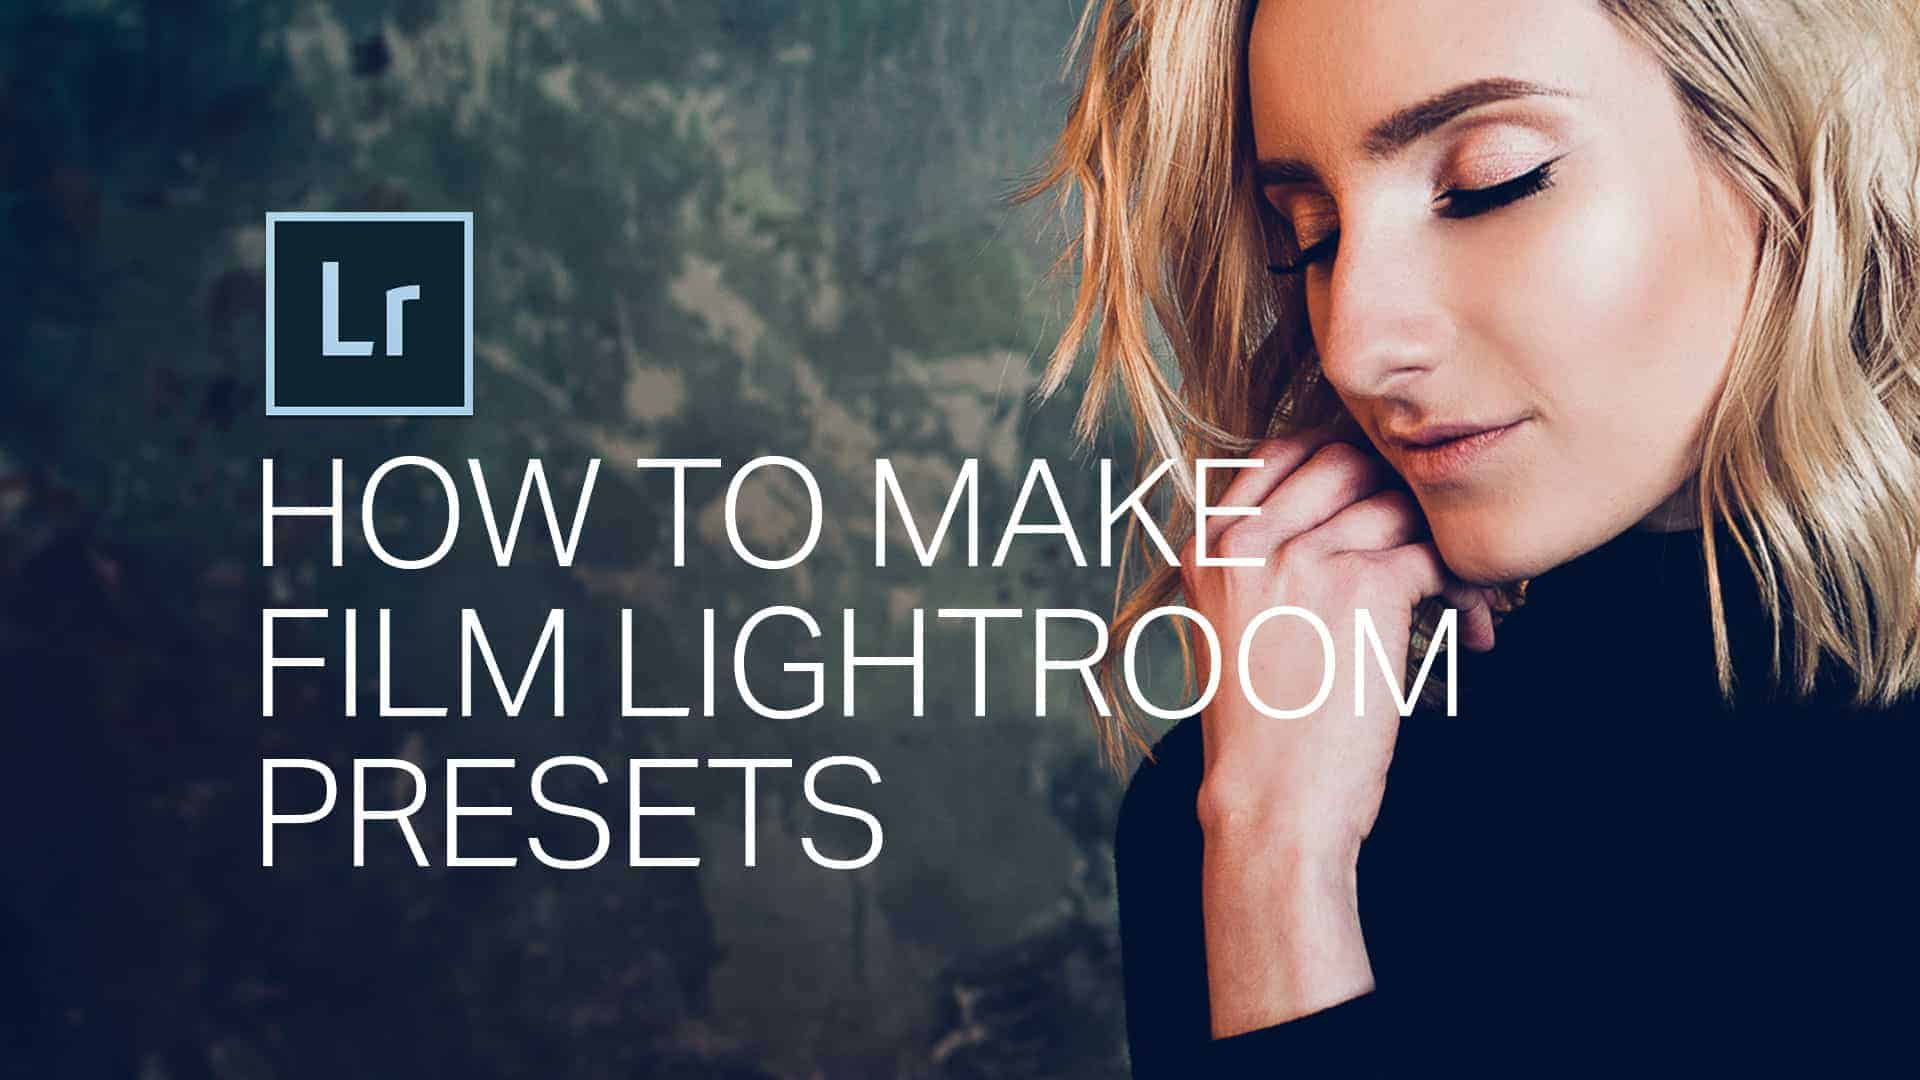 How to Create Your Own Film Presets in a Rational Step-by-Step Approach